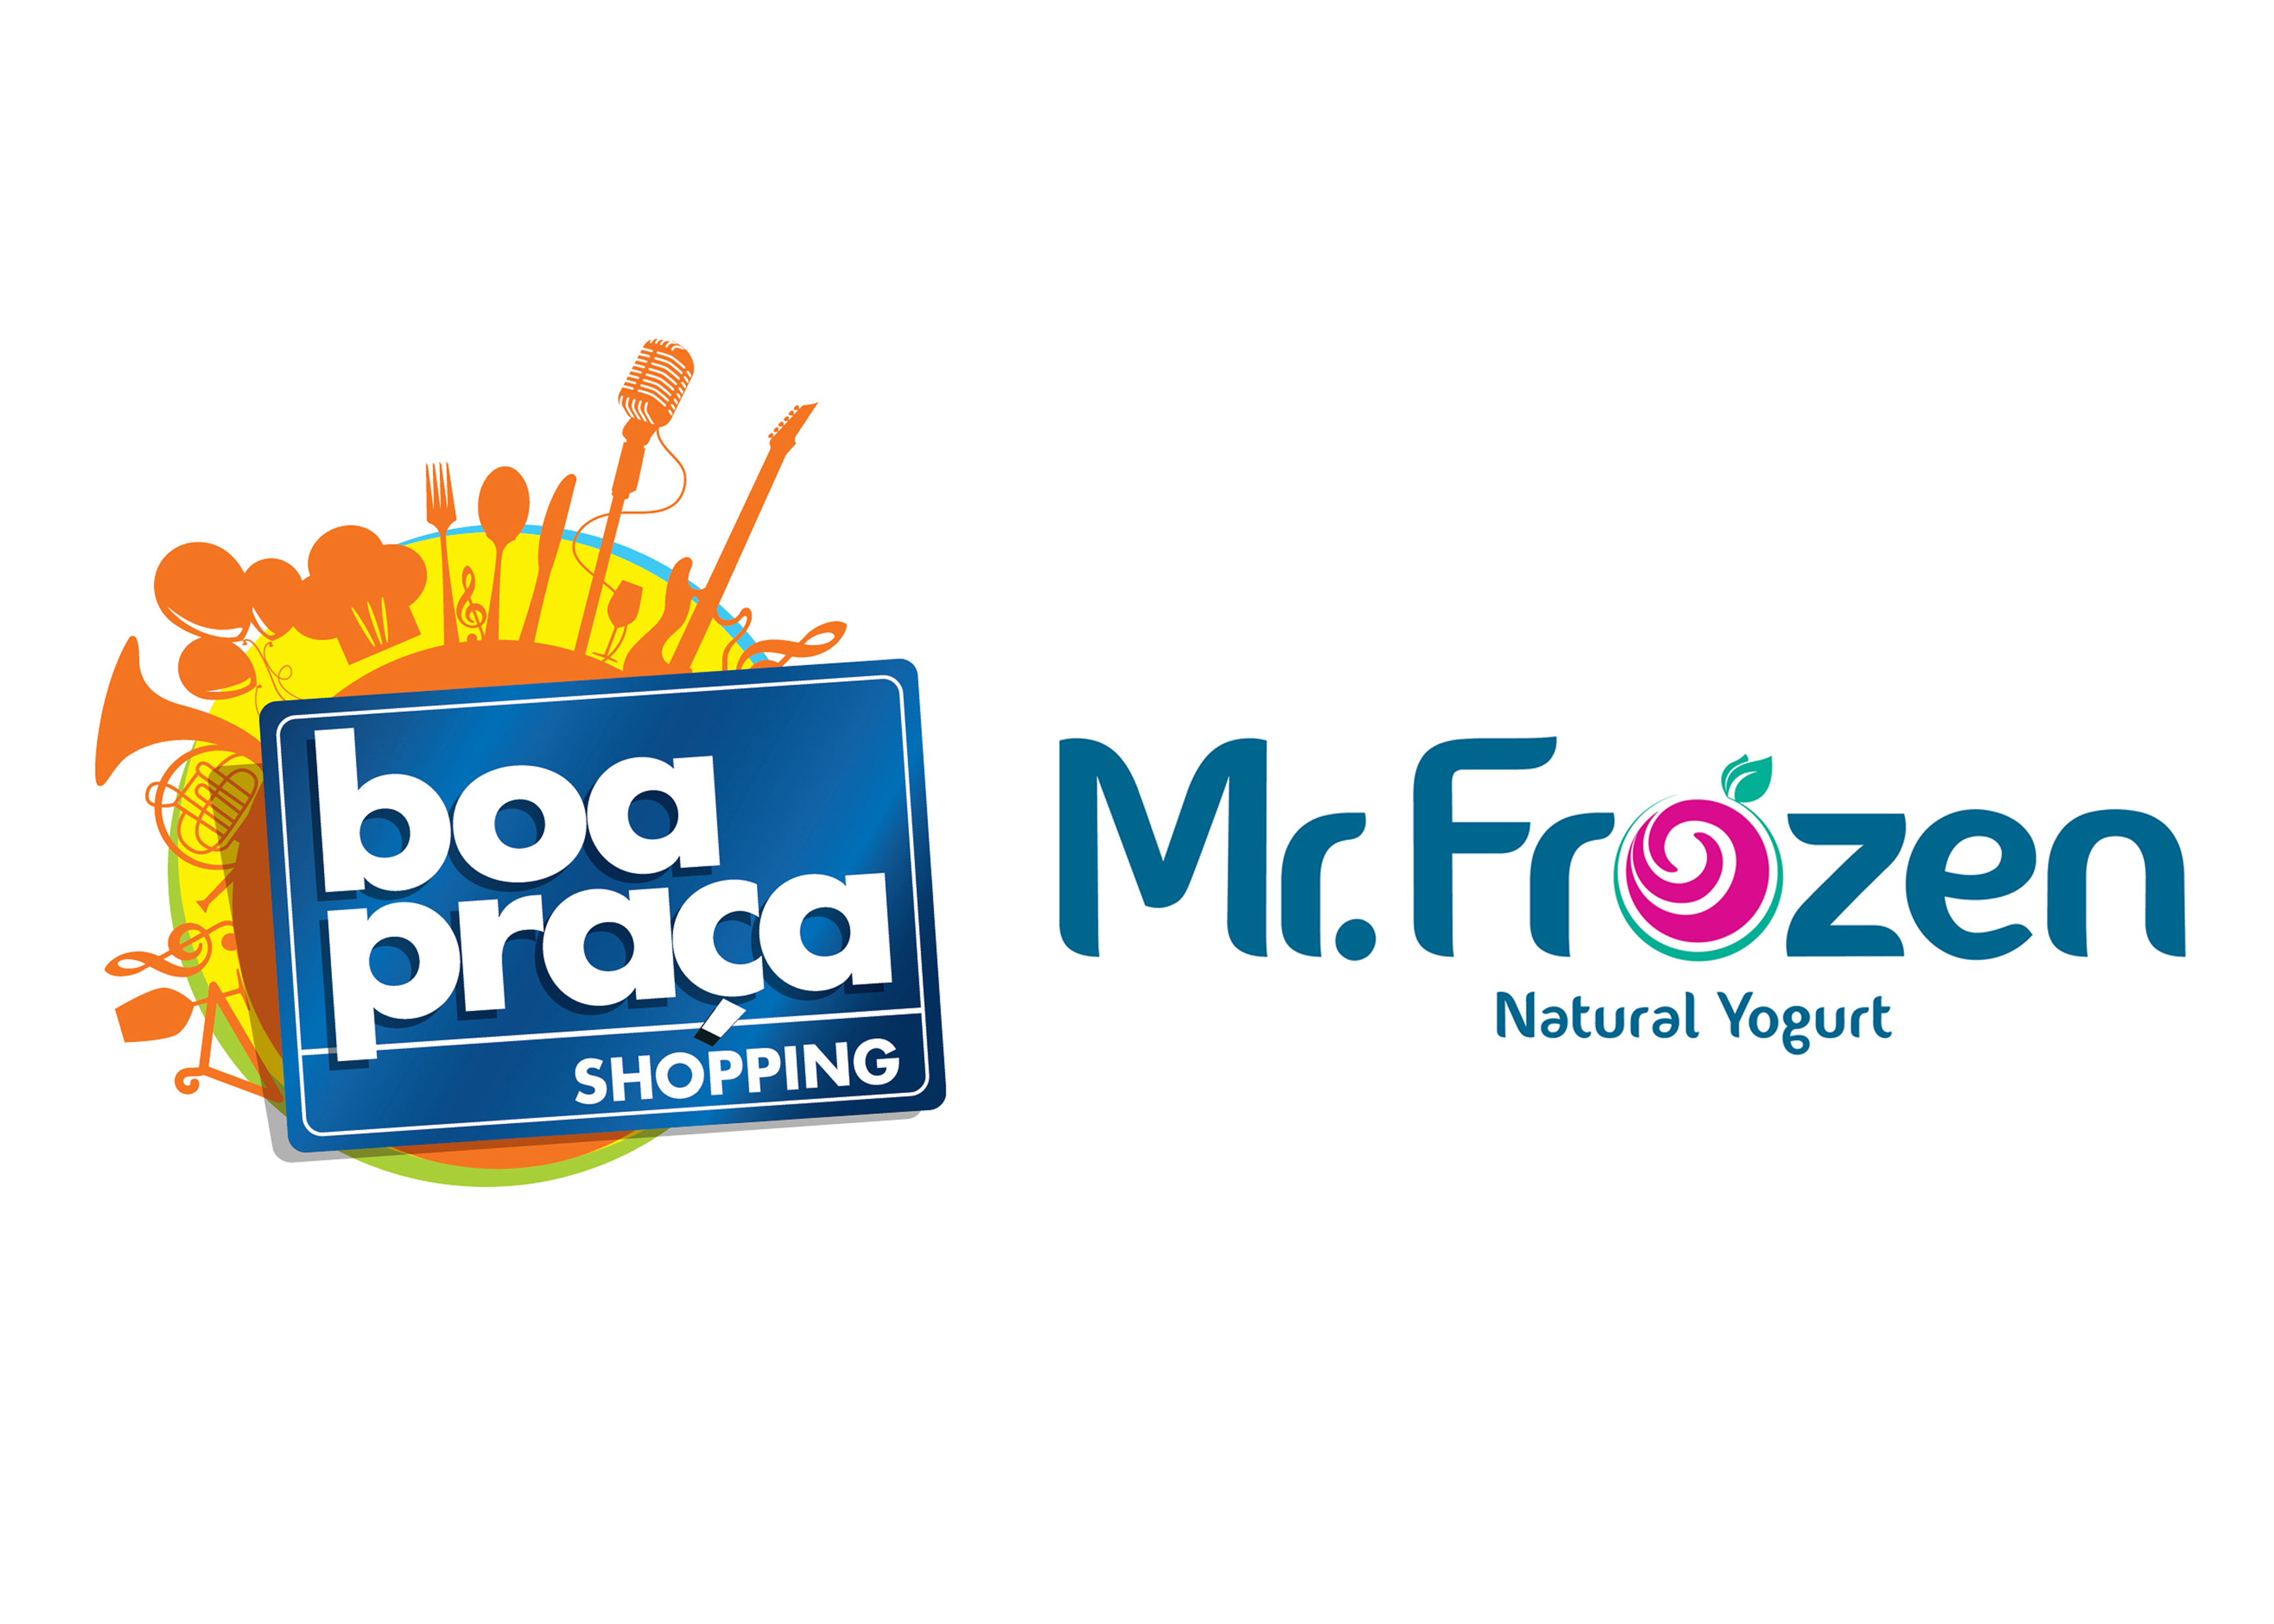 LOGO BOA PRAÇA e MR.FROZEN